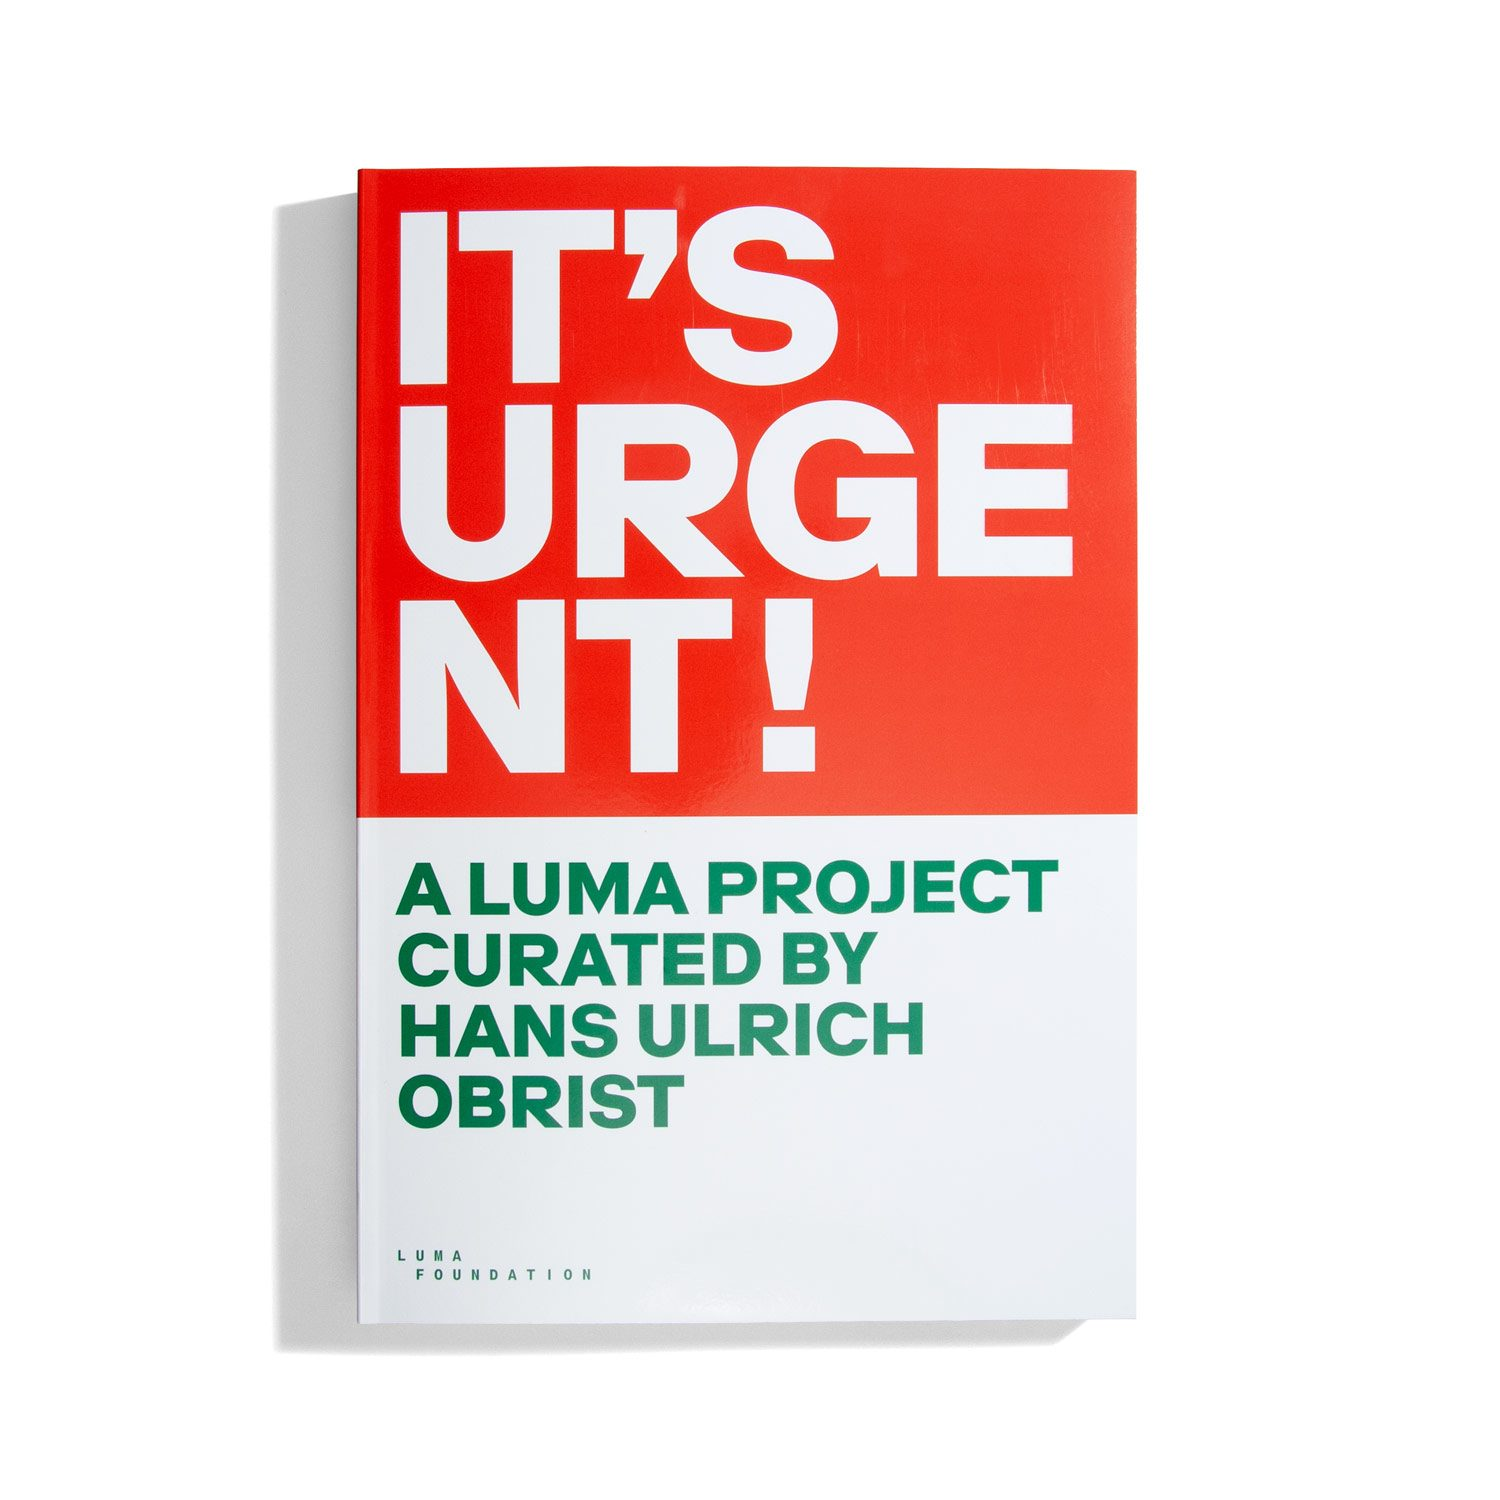 It's urgent - A Luma Project curated by Hans Ulrich Obrist